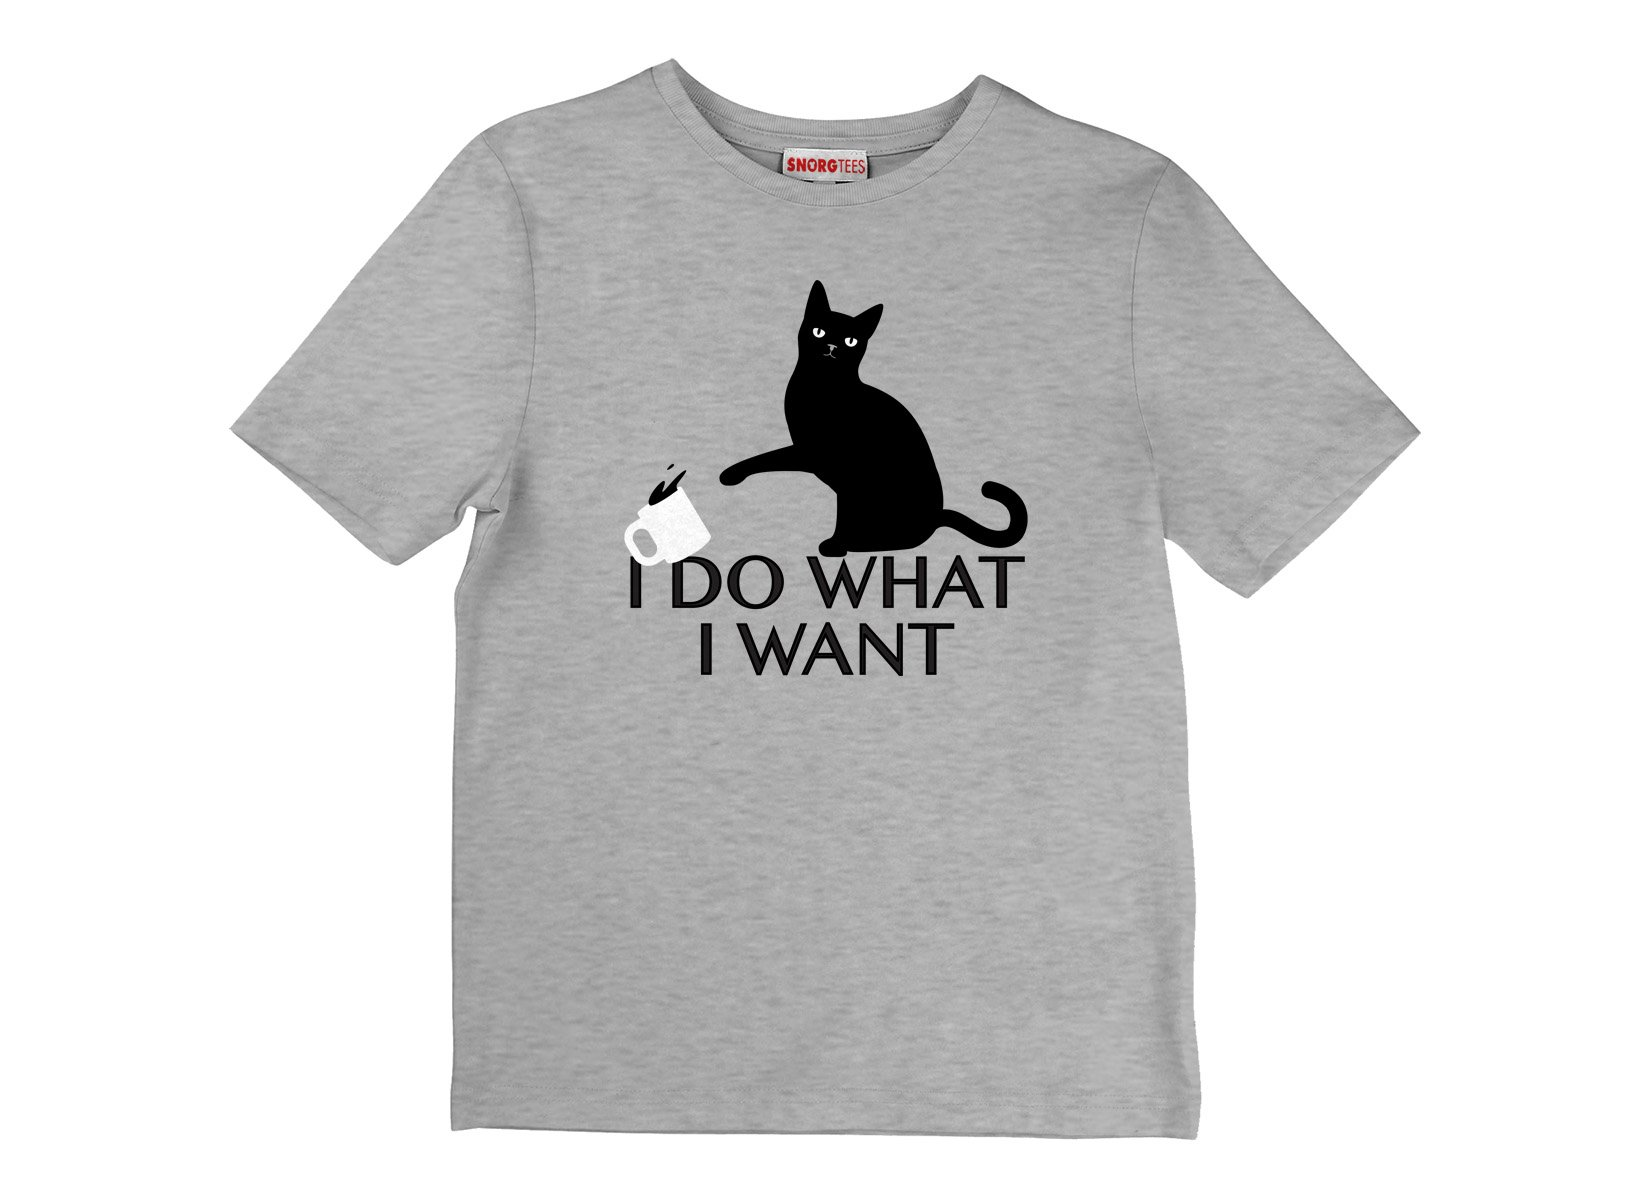 I Do What I Want on Kids T-Shirt